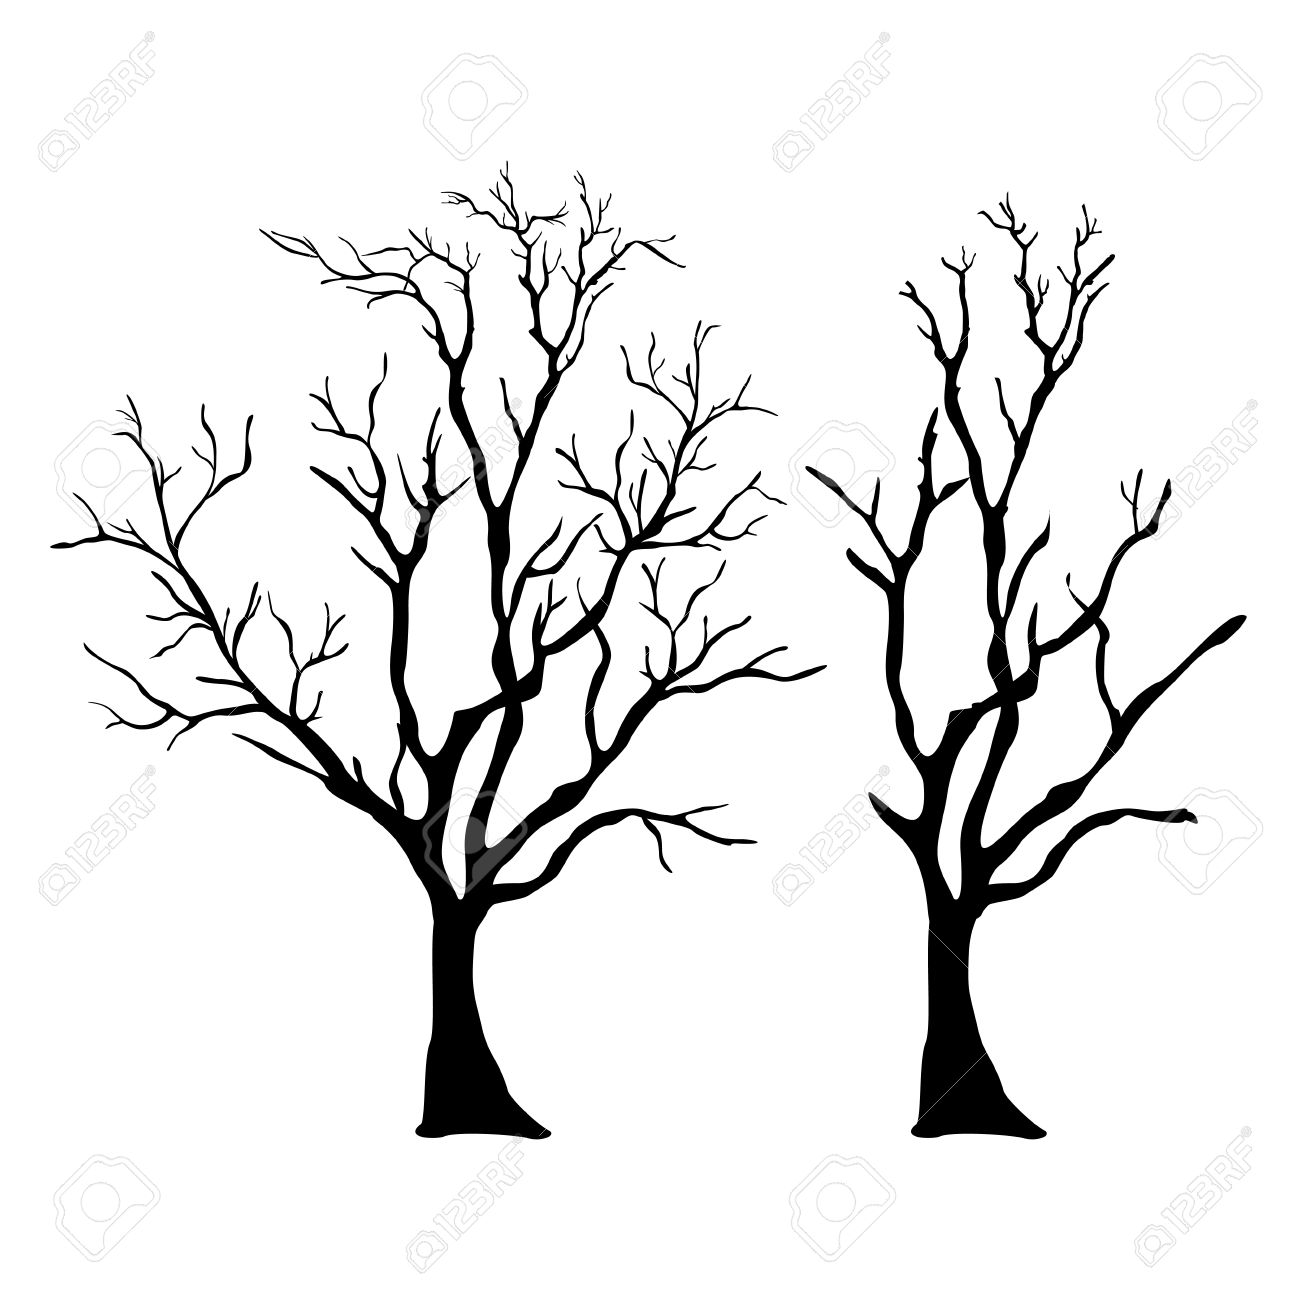 vector tree with branches royalty free cliparts vectors and stock rh 123rf com tree branch vector image tree branch vector free